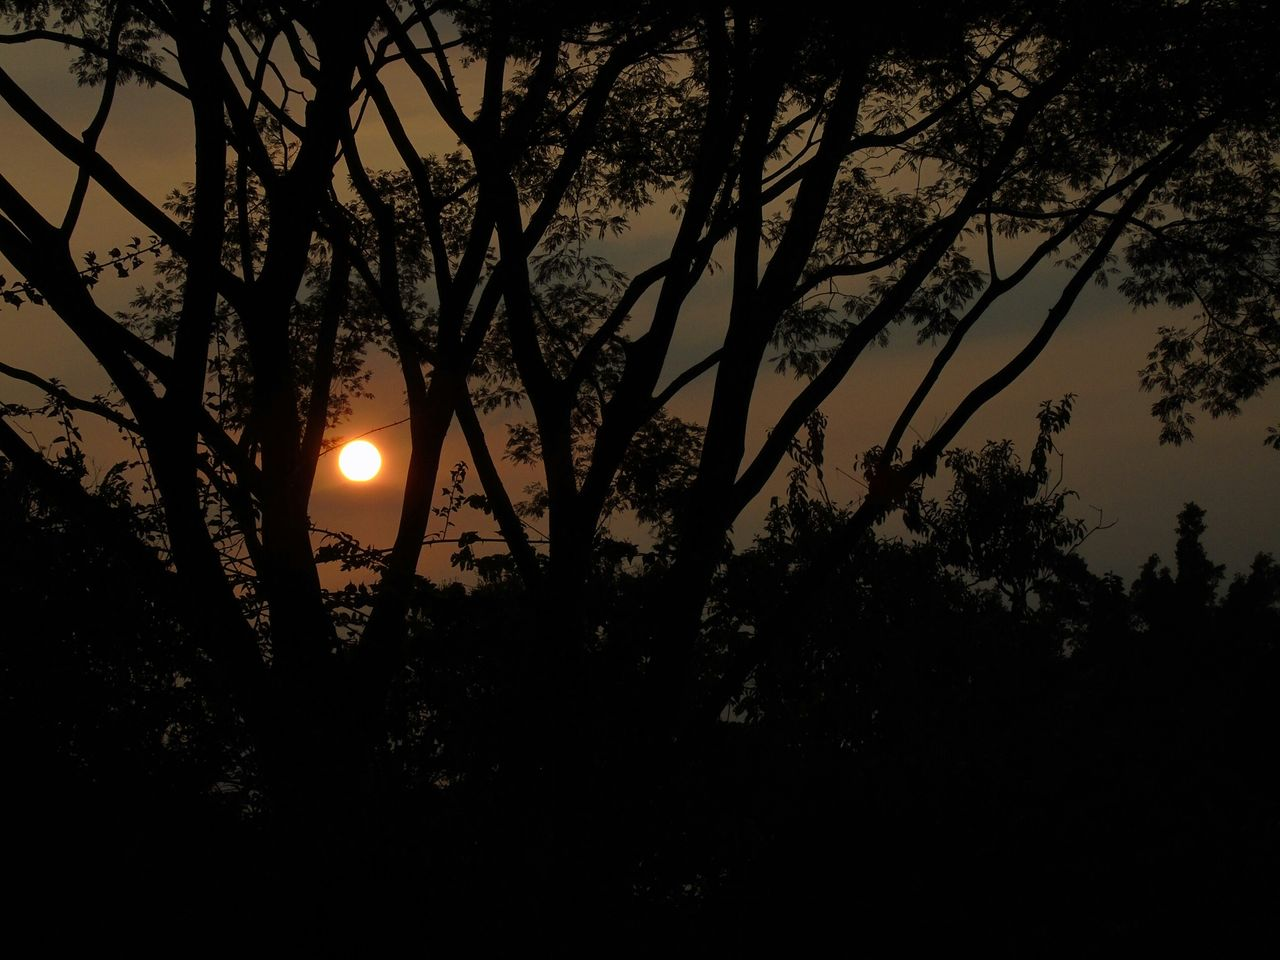 tree, moon, sun, silhouette, sunset, beauty in nature, nature, tranquil scene, tranquility, scenics, no people, outdoors, growth, sky, moonlight, illuminated, astronomy